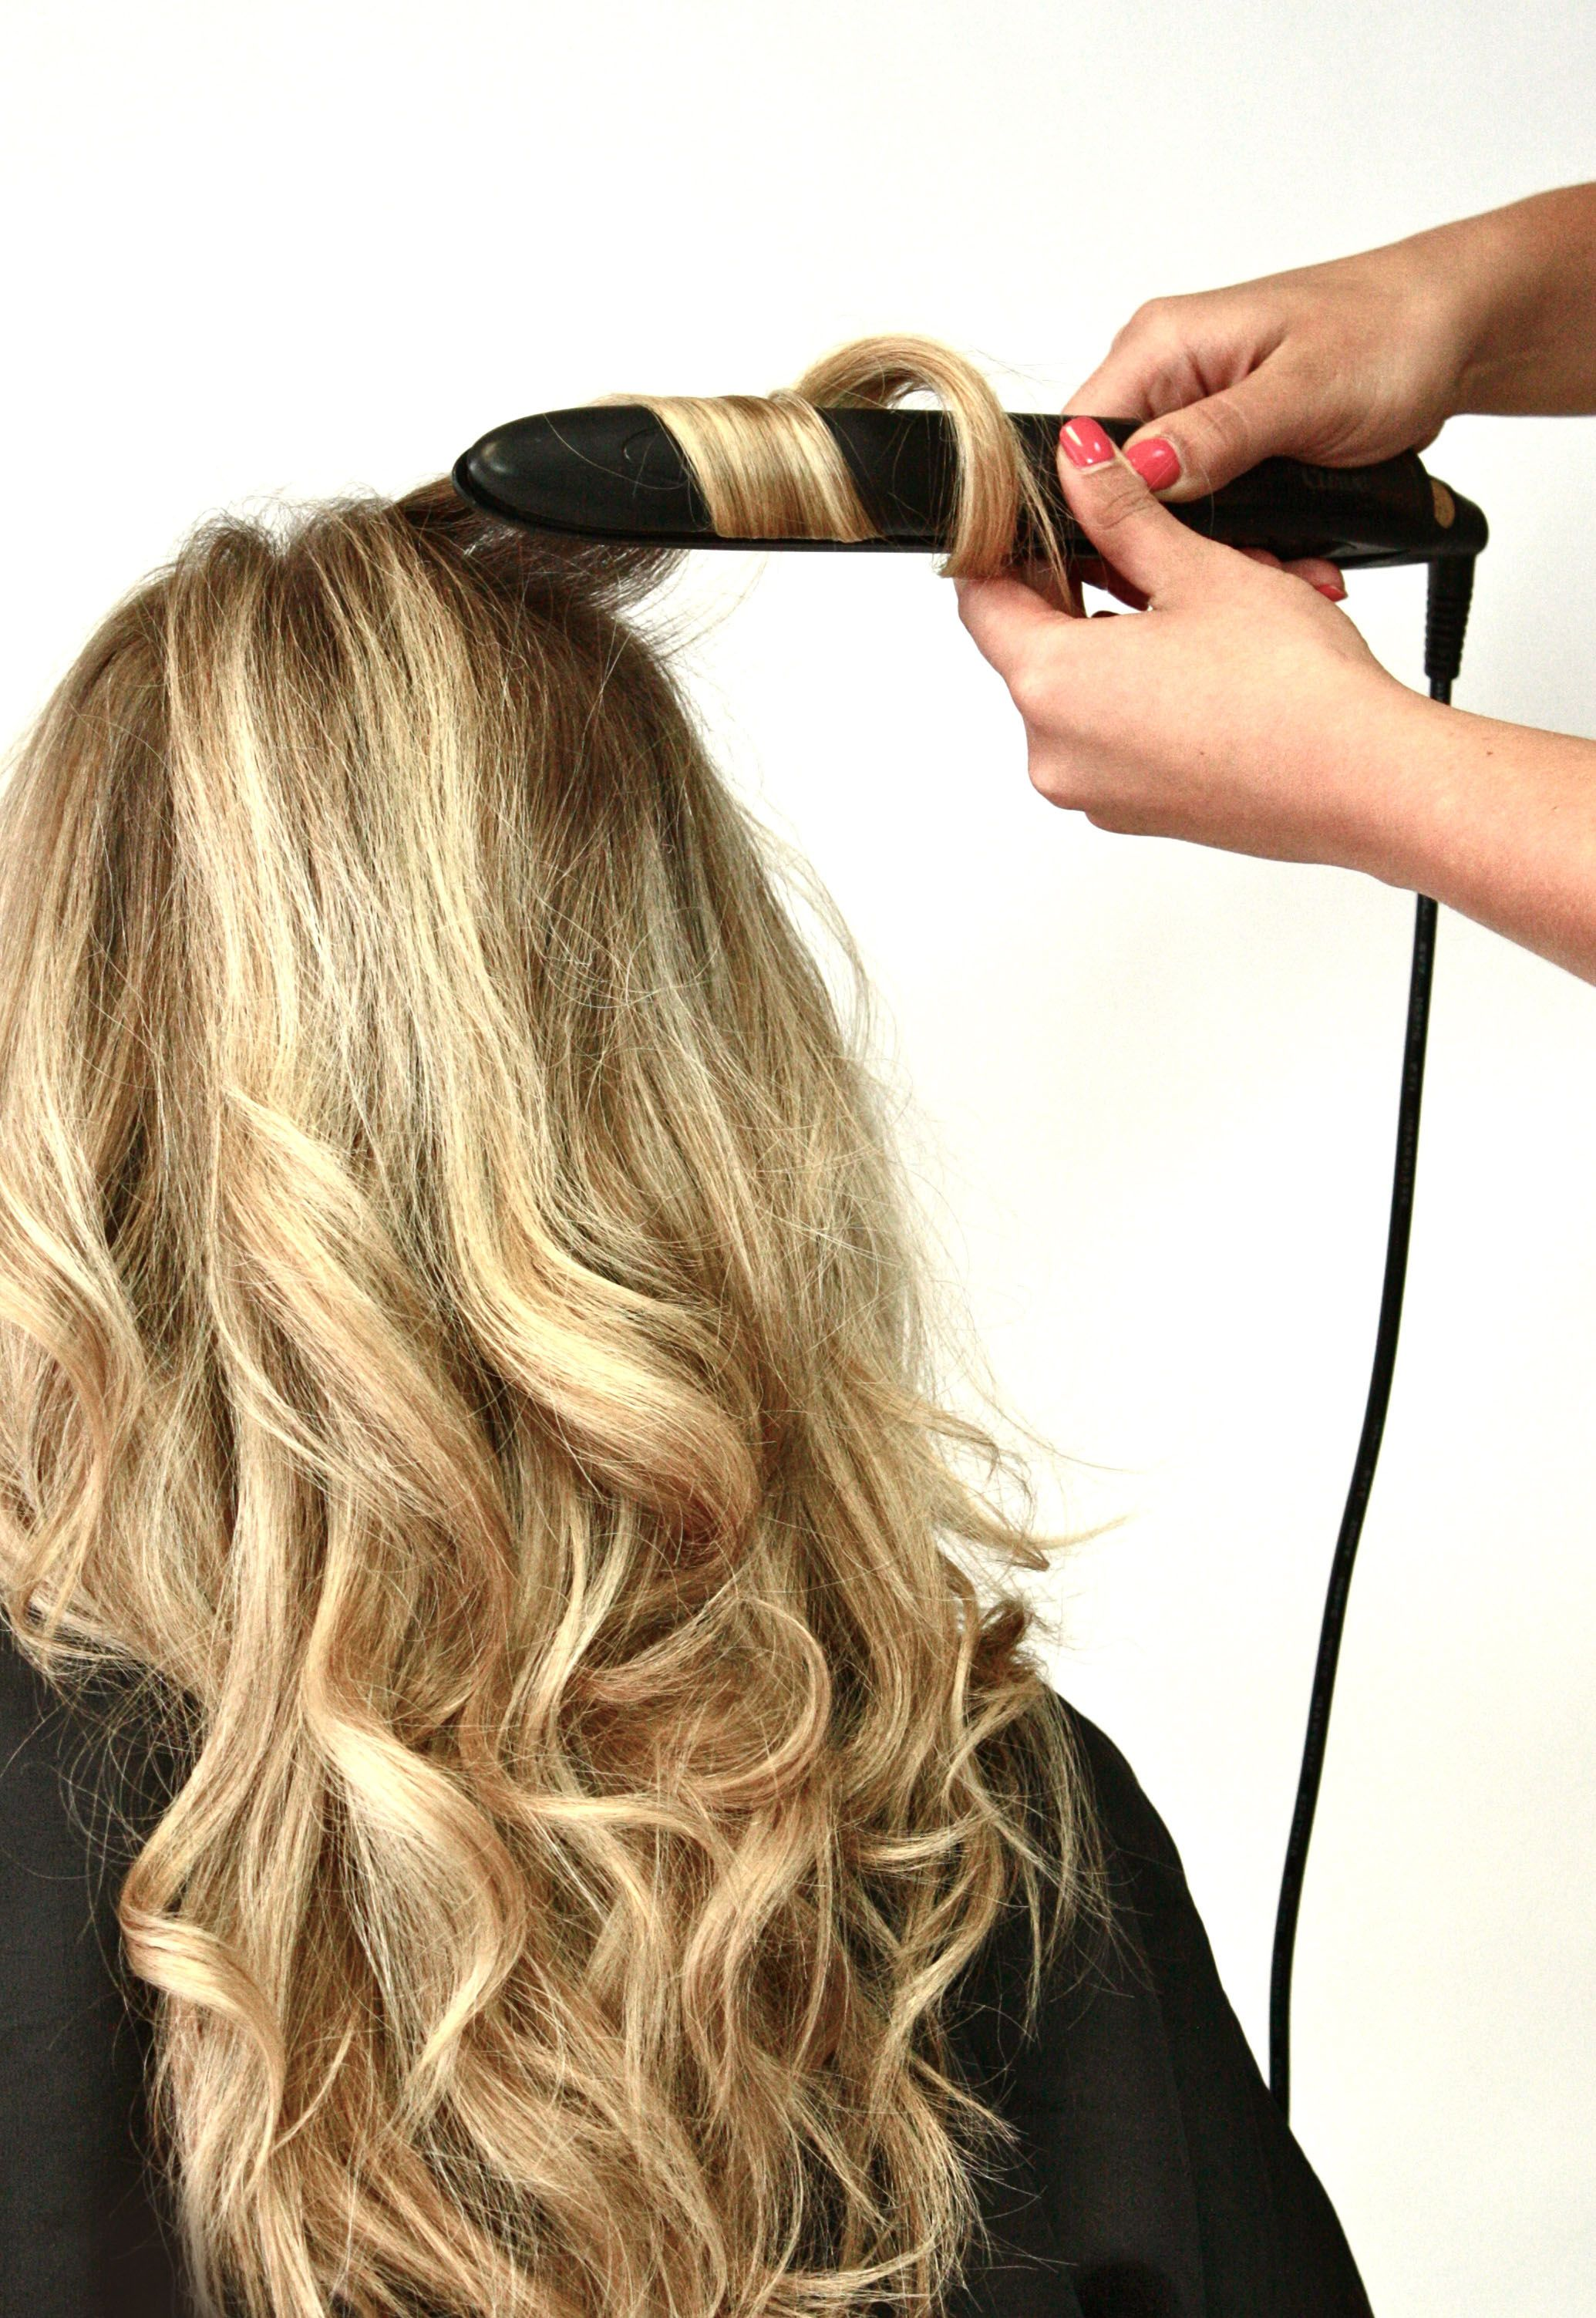 Curling With The Curve Flat Iron Flat Iron Curls Curl Hair With Straightener Thick Frizzy Hair